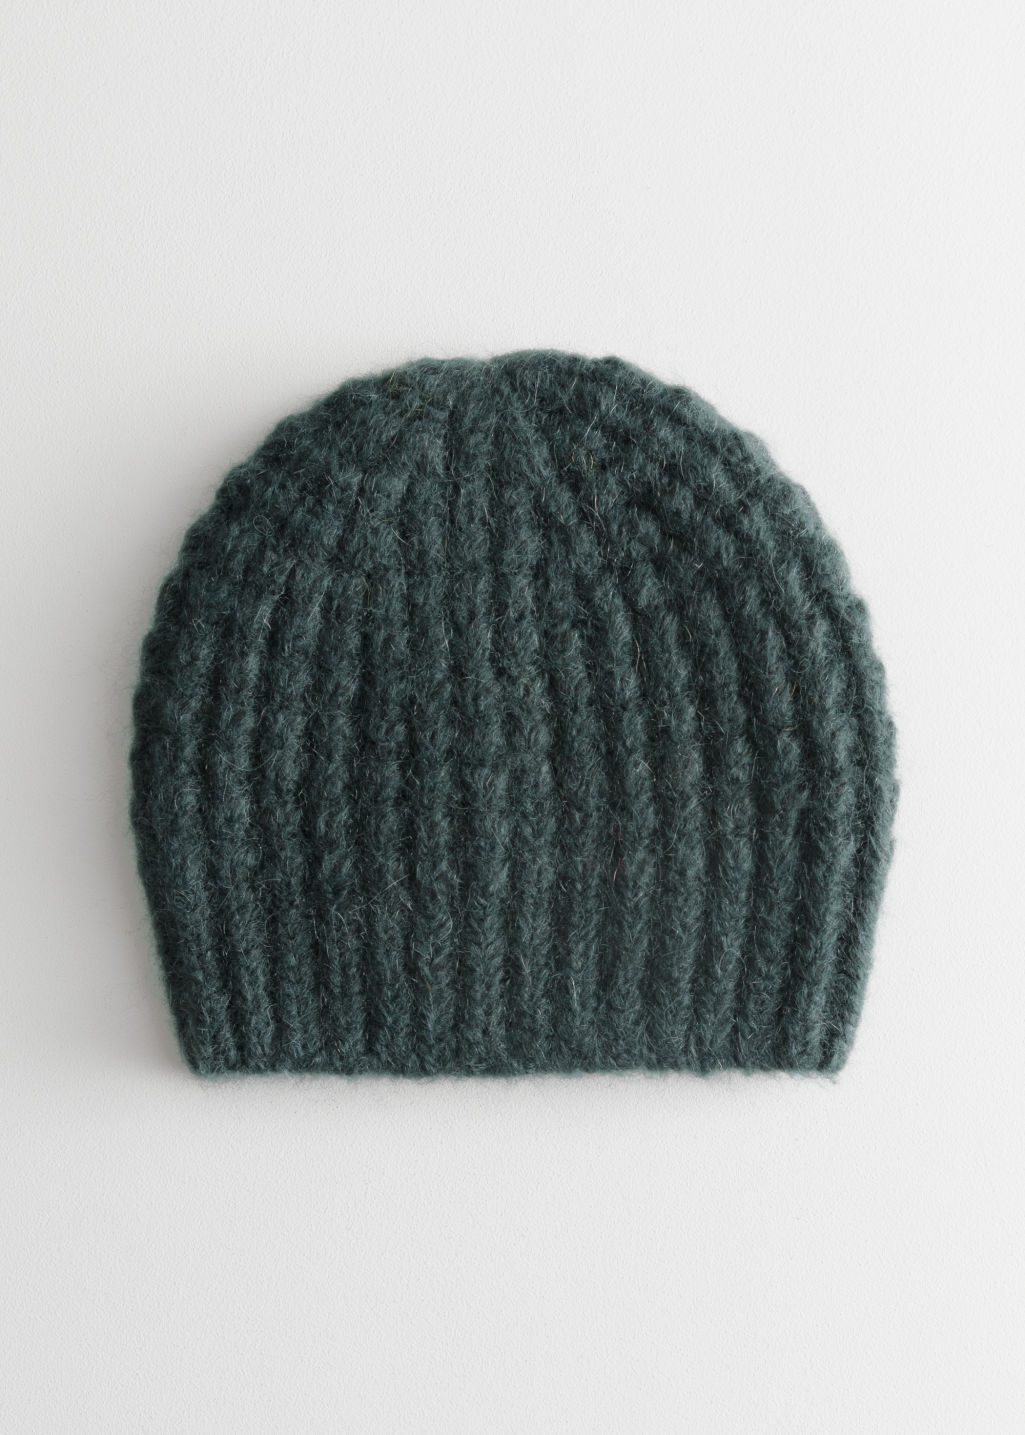 Cable Rib Knit Beanie - Green - Beanies -   Other Stories d882821d16e